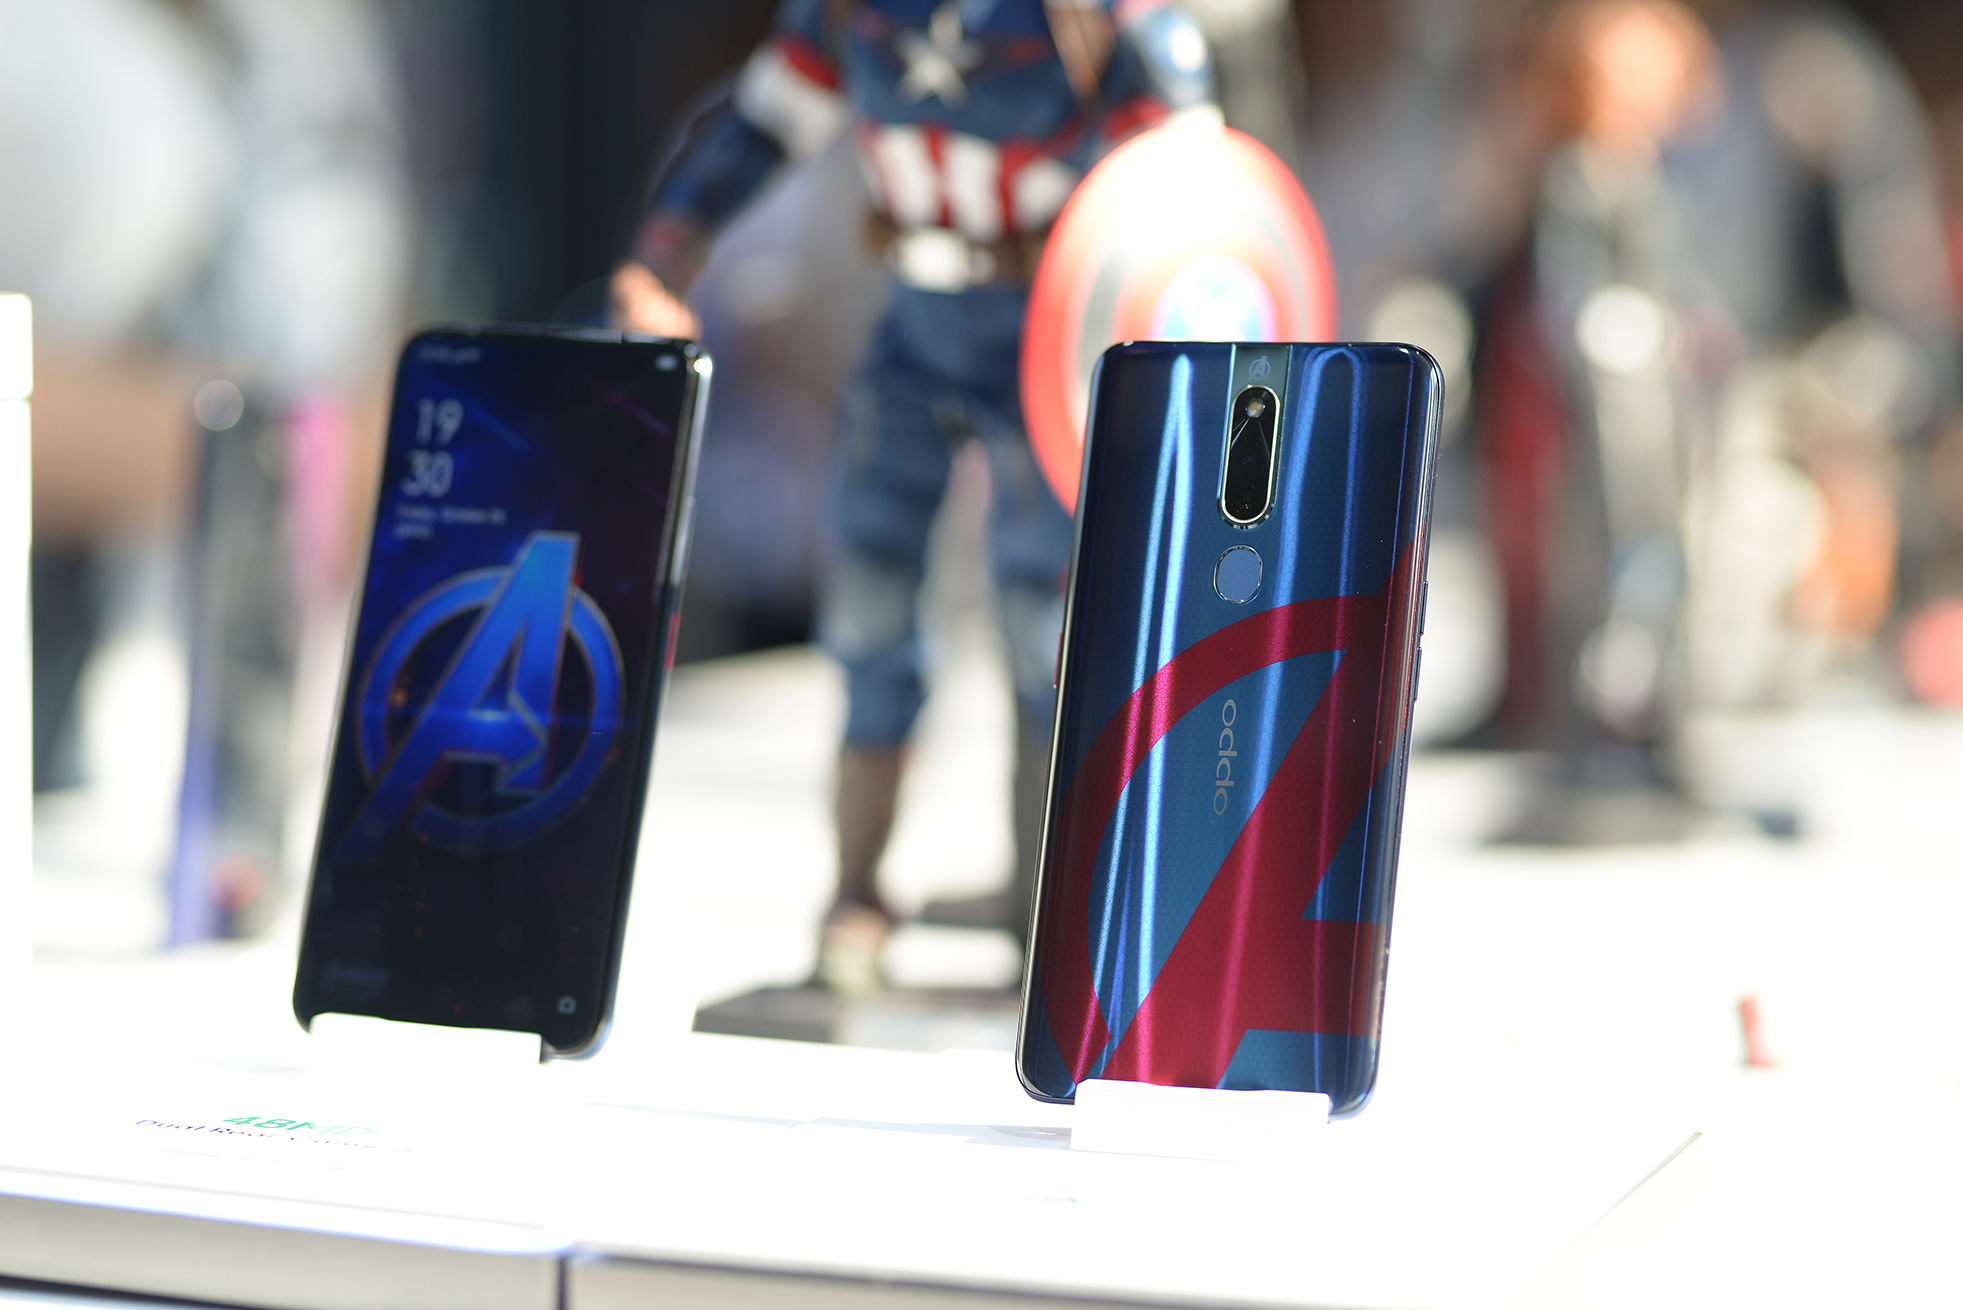 OPPO launched the new F11 Pro Marvel's Avengers limited edition smartphone at the Bonifacio High Street, April 26.